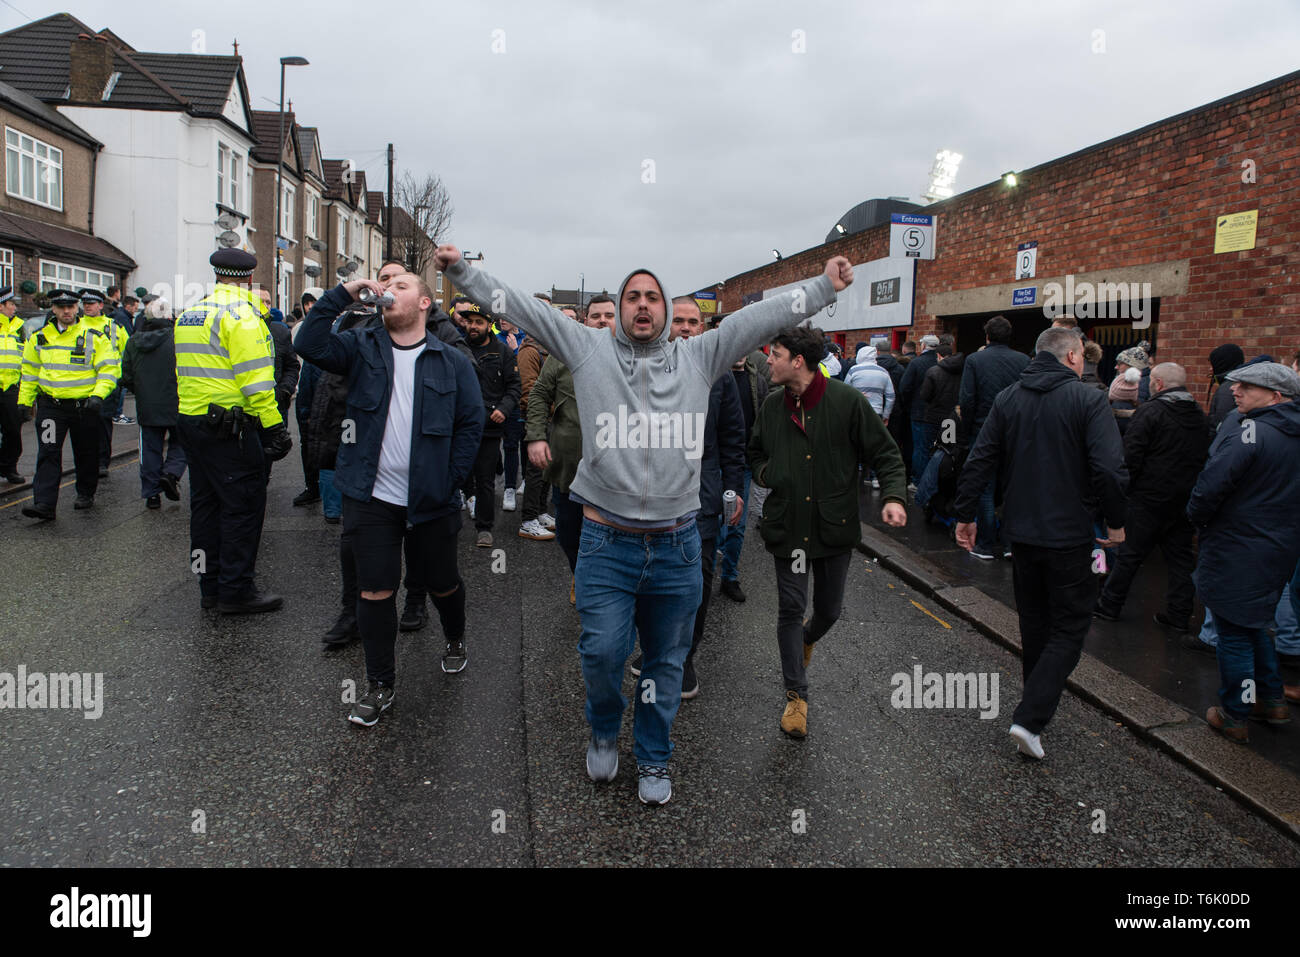 Tottenham Hotspur's fans at a FA Cup tie against Crystal Palace, Selhurst Park, London. January 2019 - Stock Image